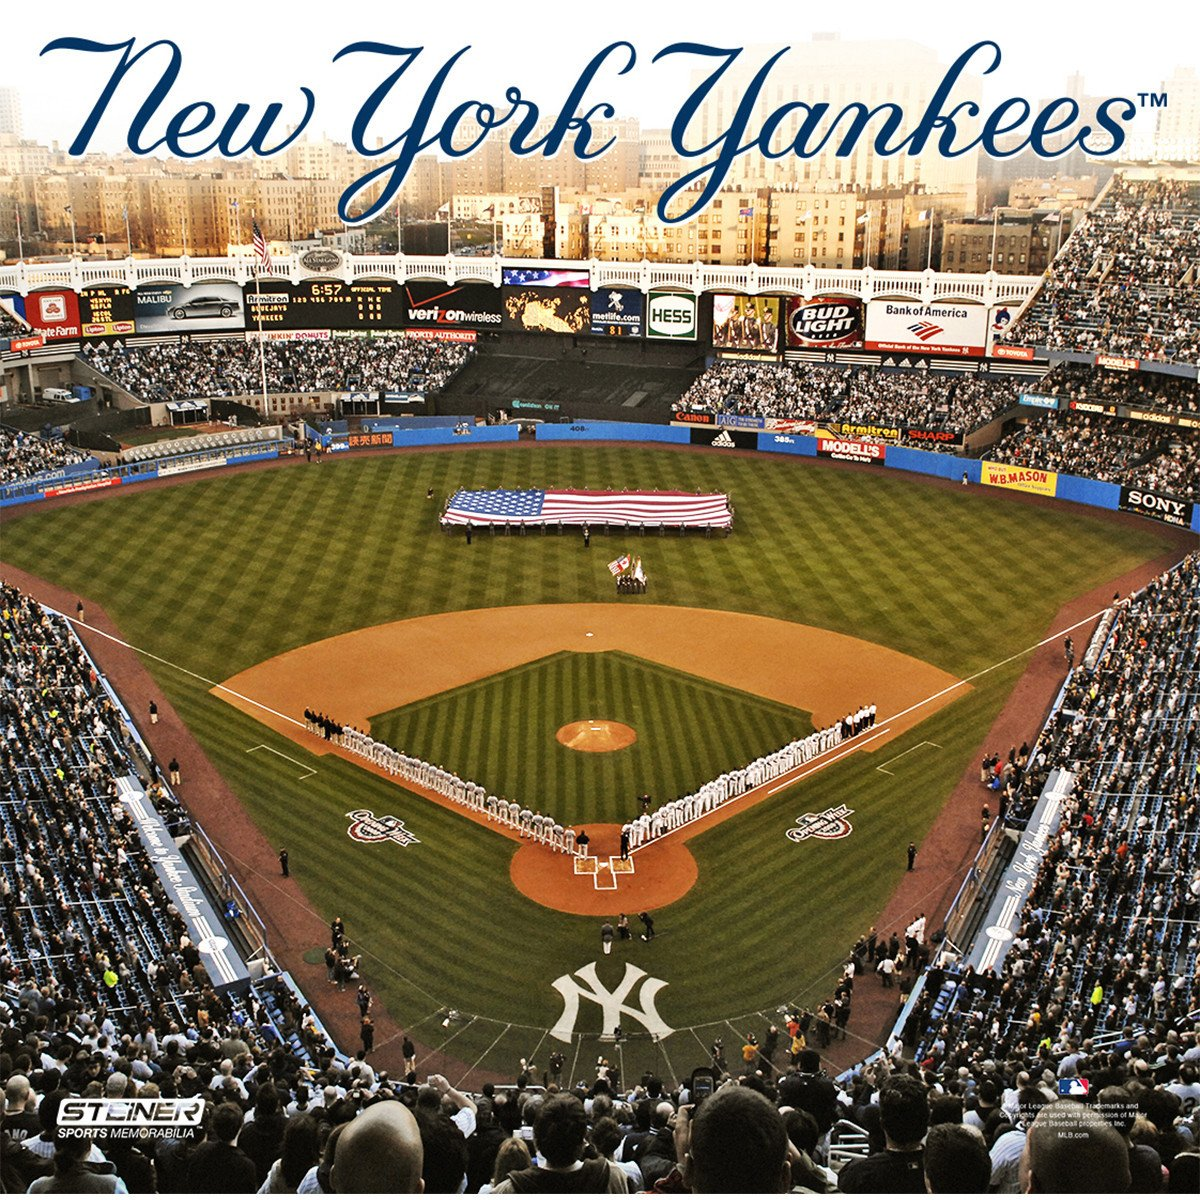 case new york yankees and yankee High quality new york yankees inspired ipad cases & skins by independent artists and designers from around the world redbubble brings you unique and colorful ipad cases & skins.